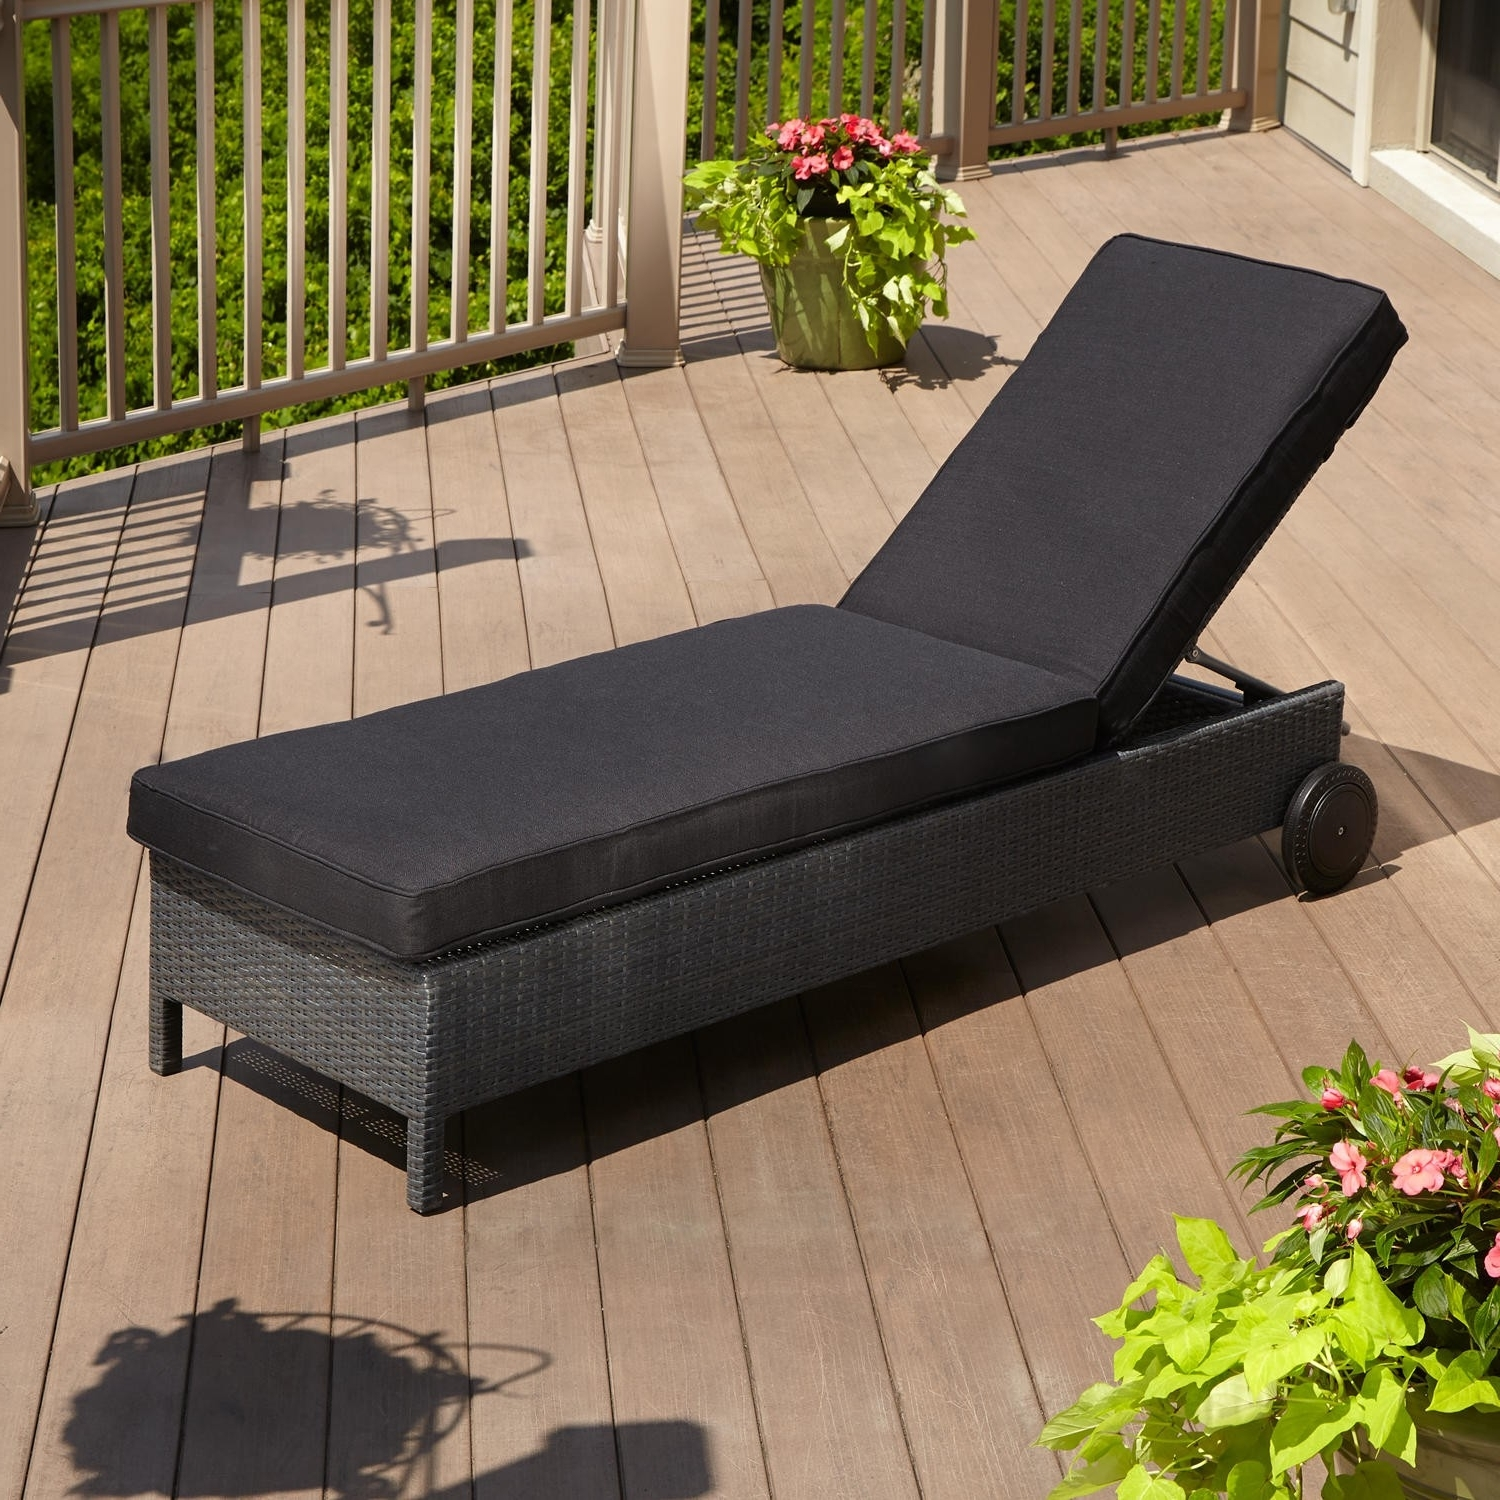 Chaise Lounges For Outdoor Patio Within Most Up To Date Patio Chaise Lounge As The Must Have Furniture In Your Pool Deck (View 6 of 15)